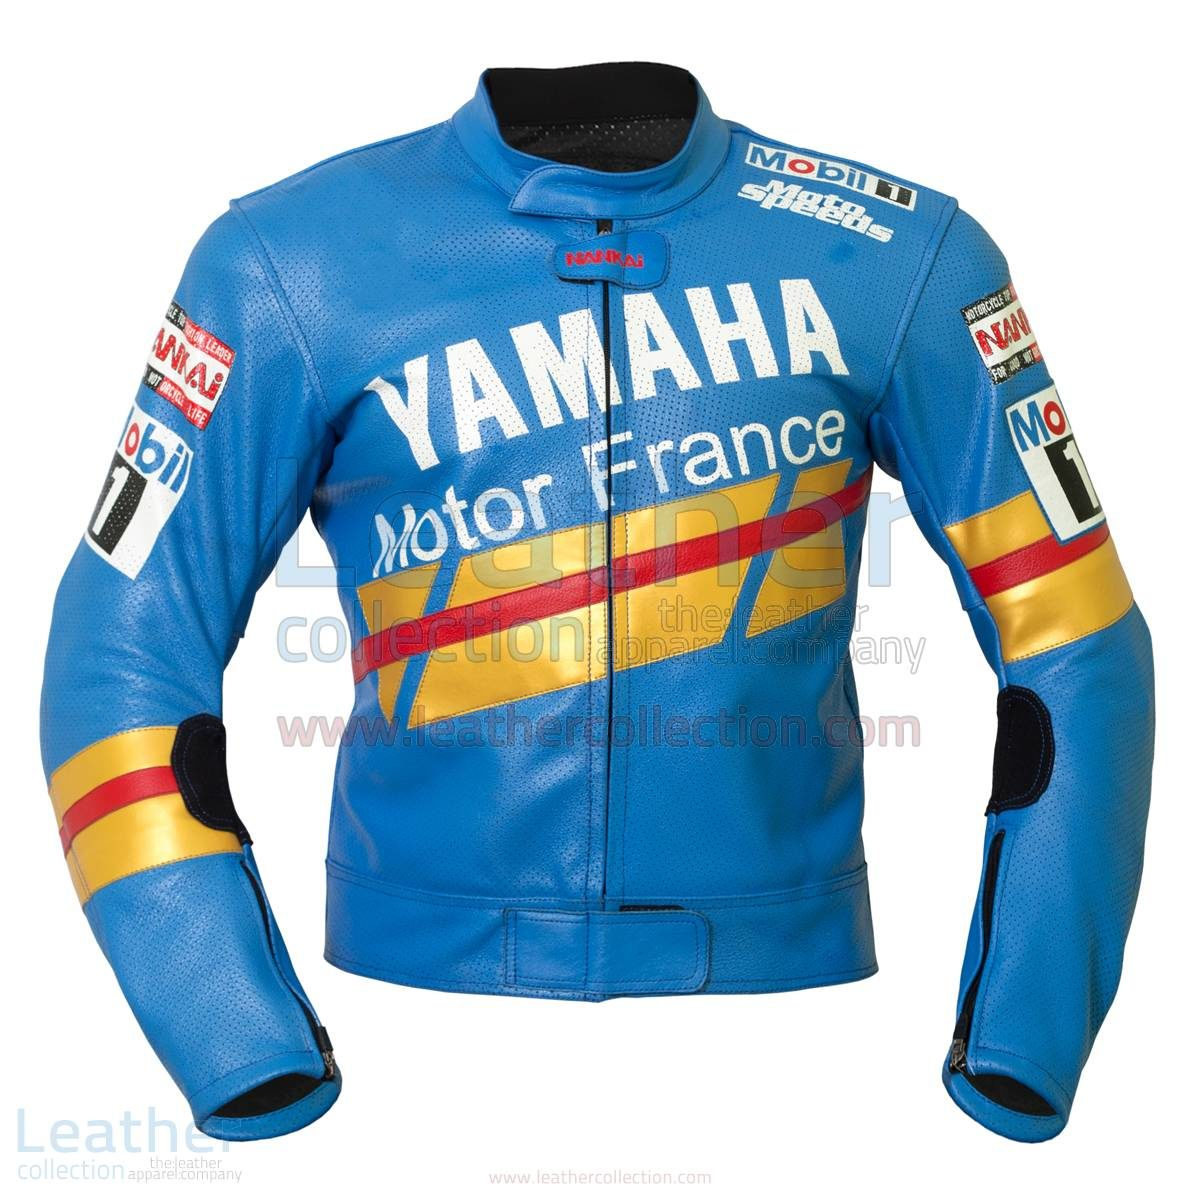 yamaha clothing